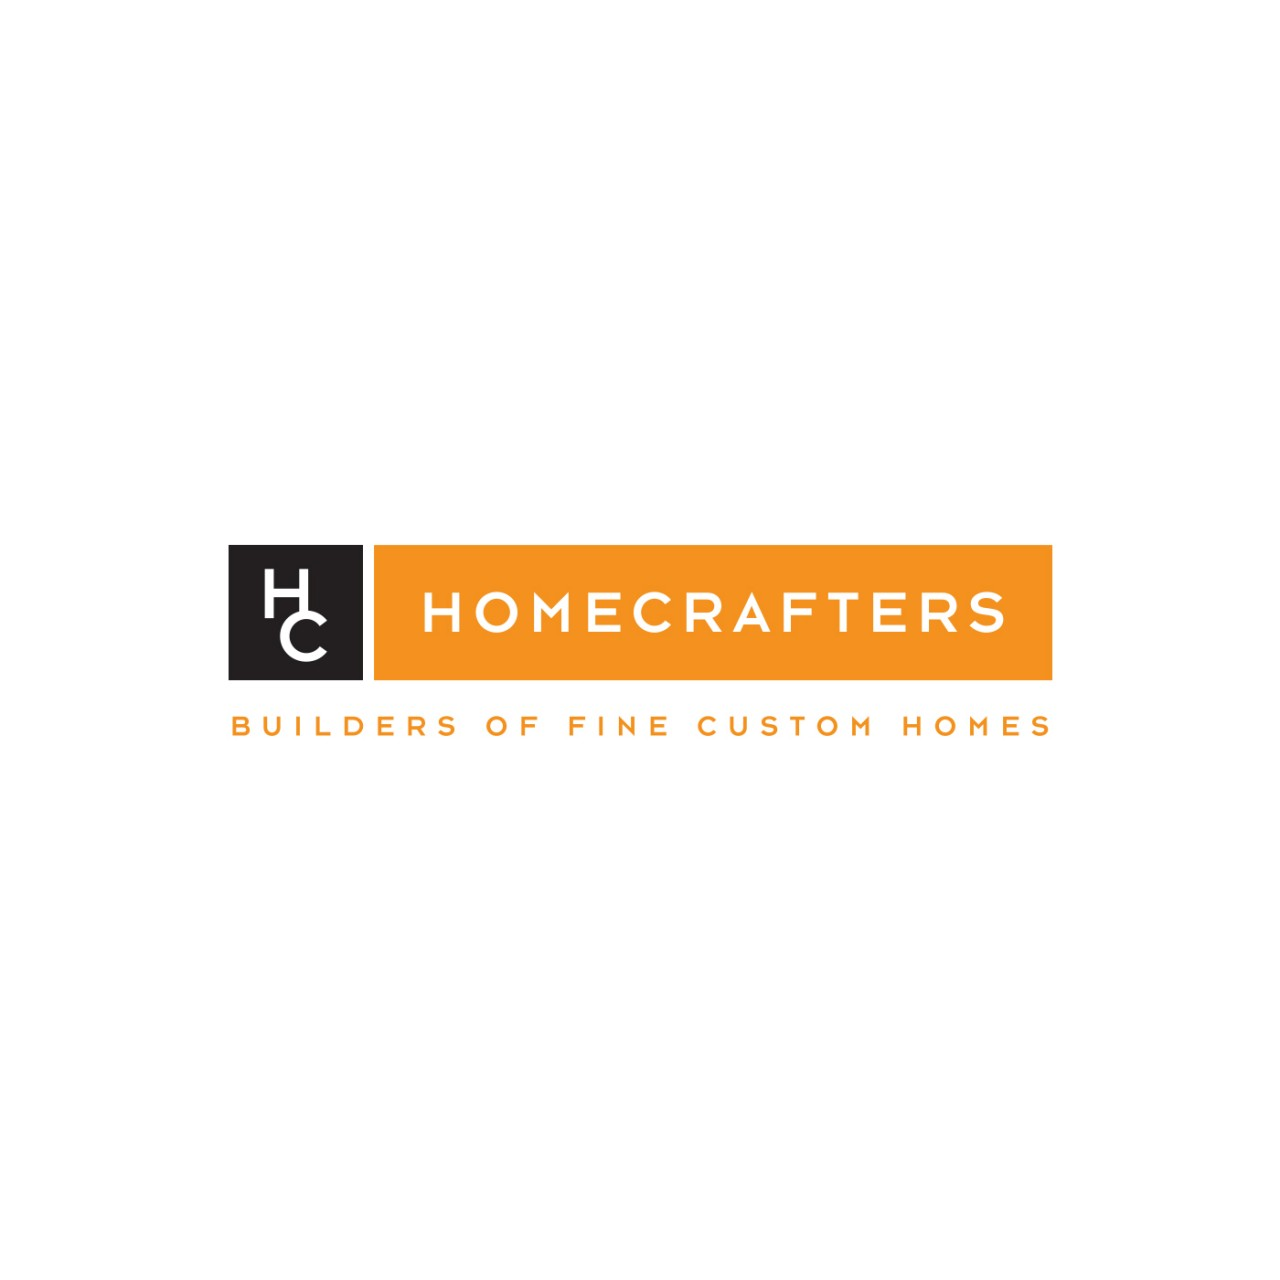 homecarfters-logo